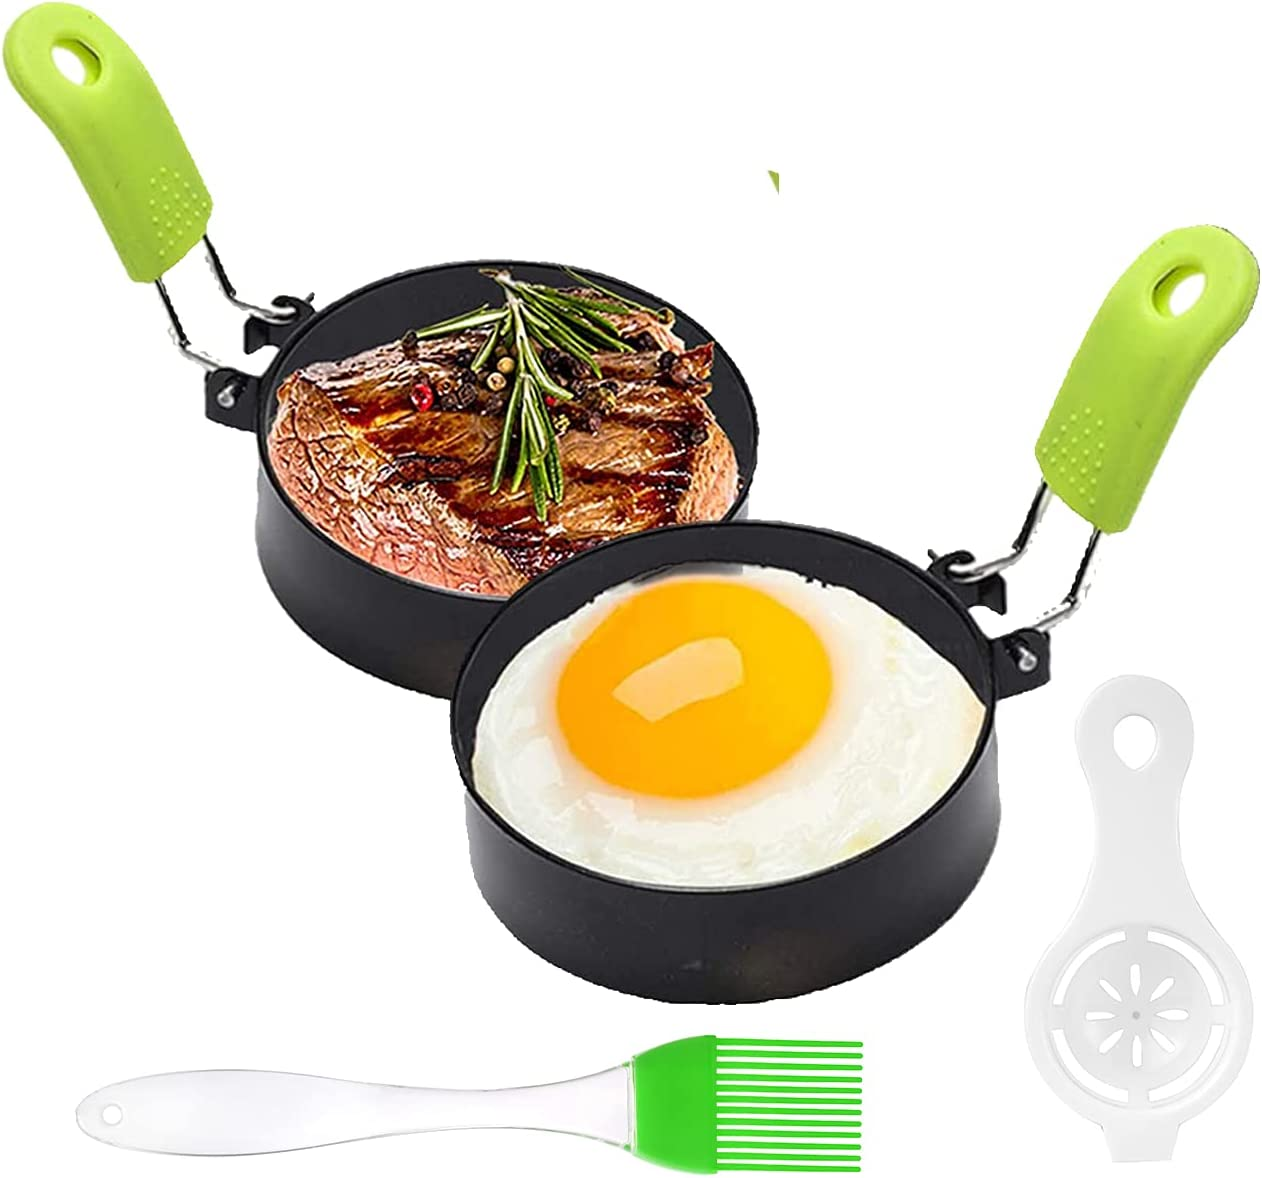 Stainless Steel Egg Ring 2 Breakfast Pcs Mol Max 90% OFF Round Recommended Household